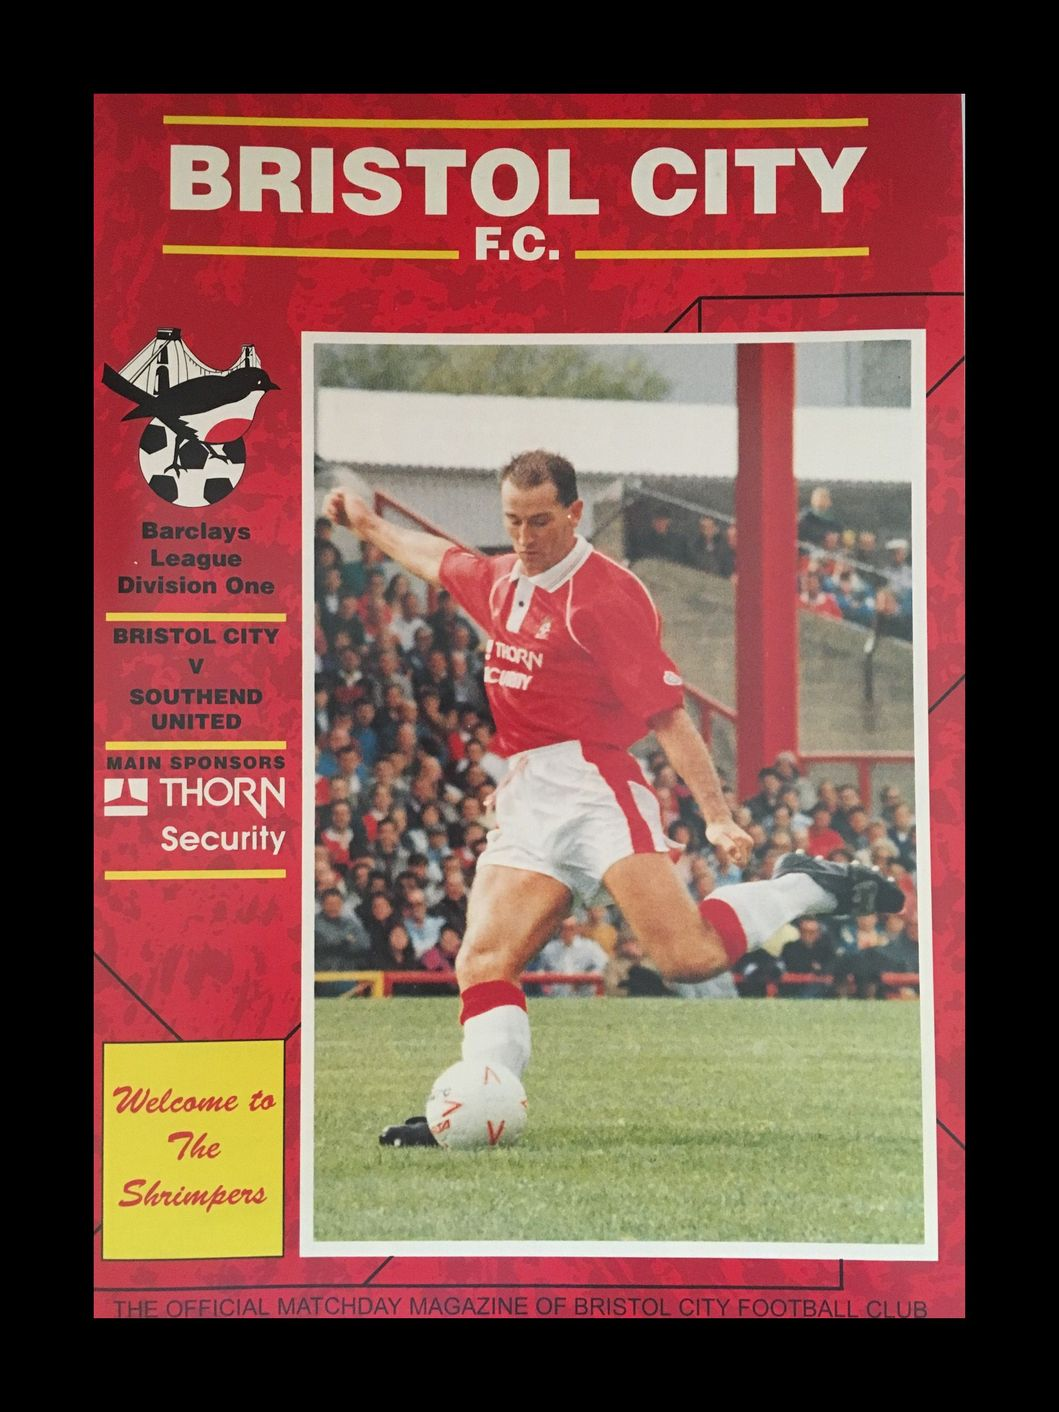 Bristol City v Southend United 12-09-1992 Programme